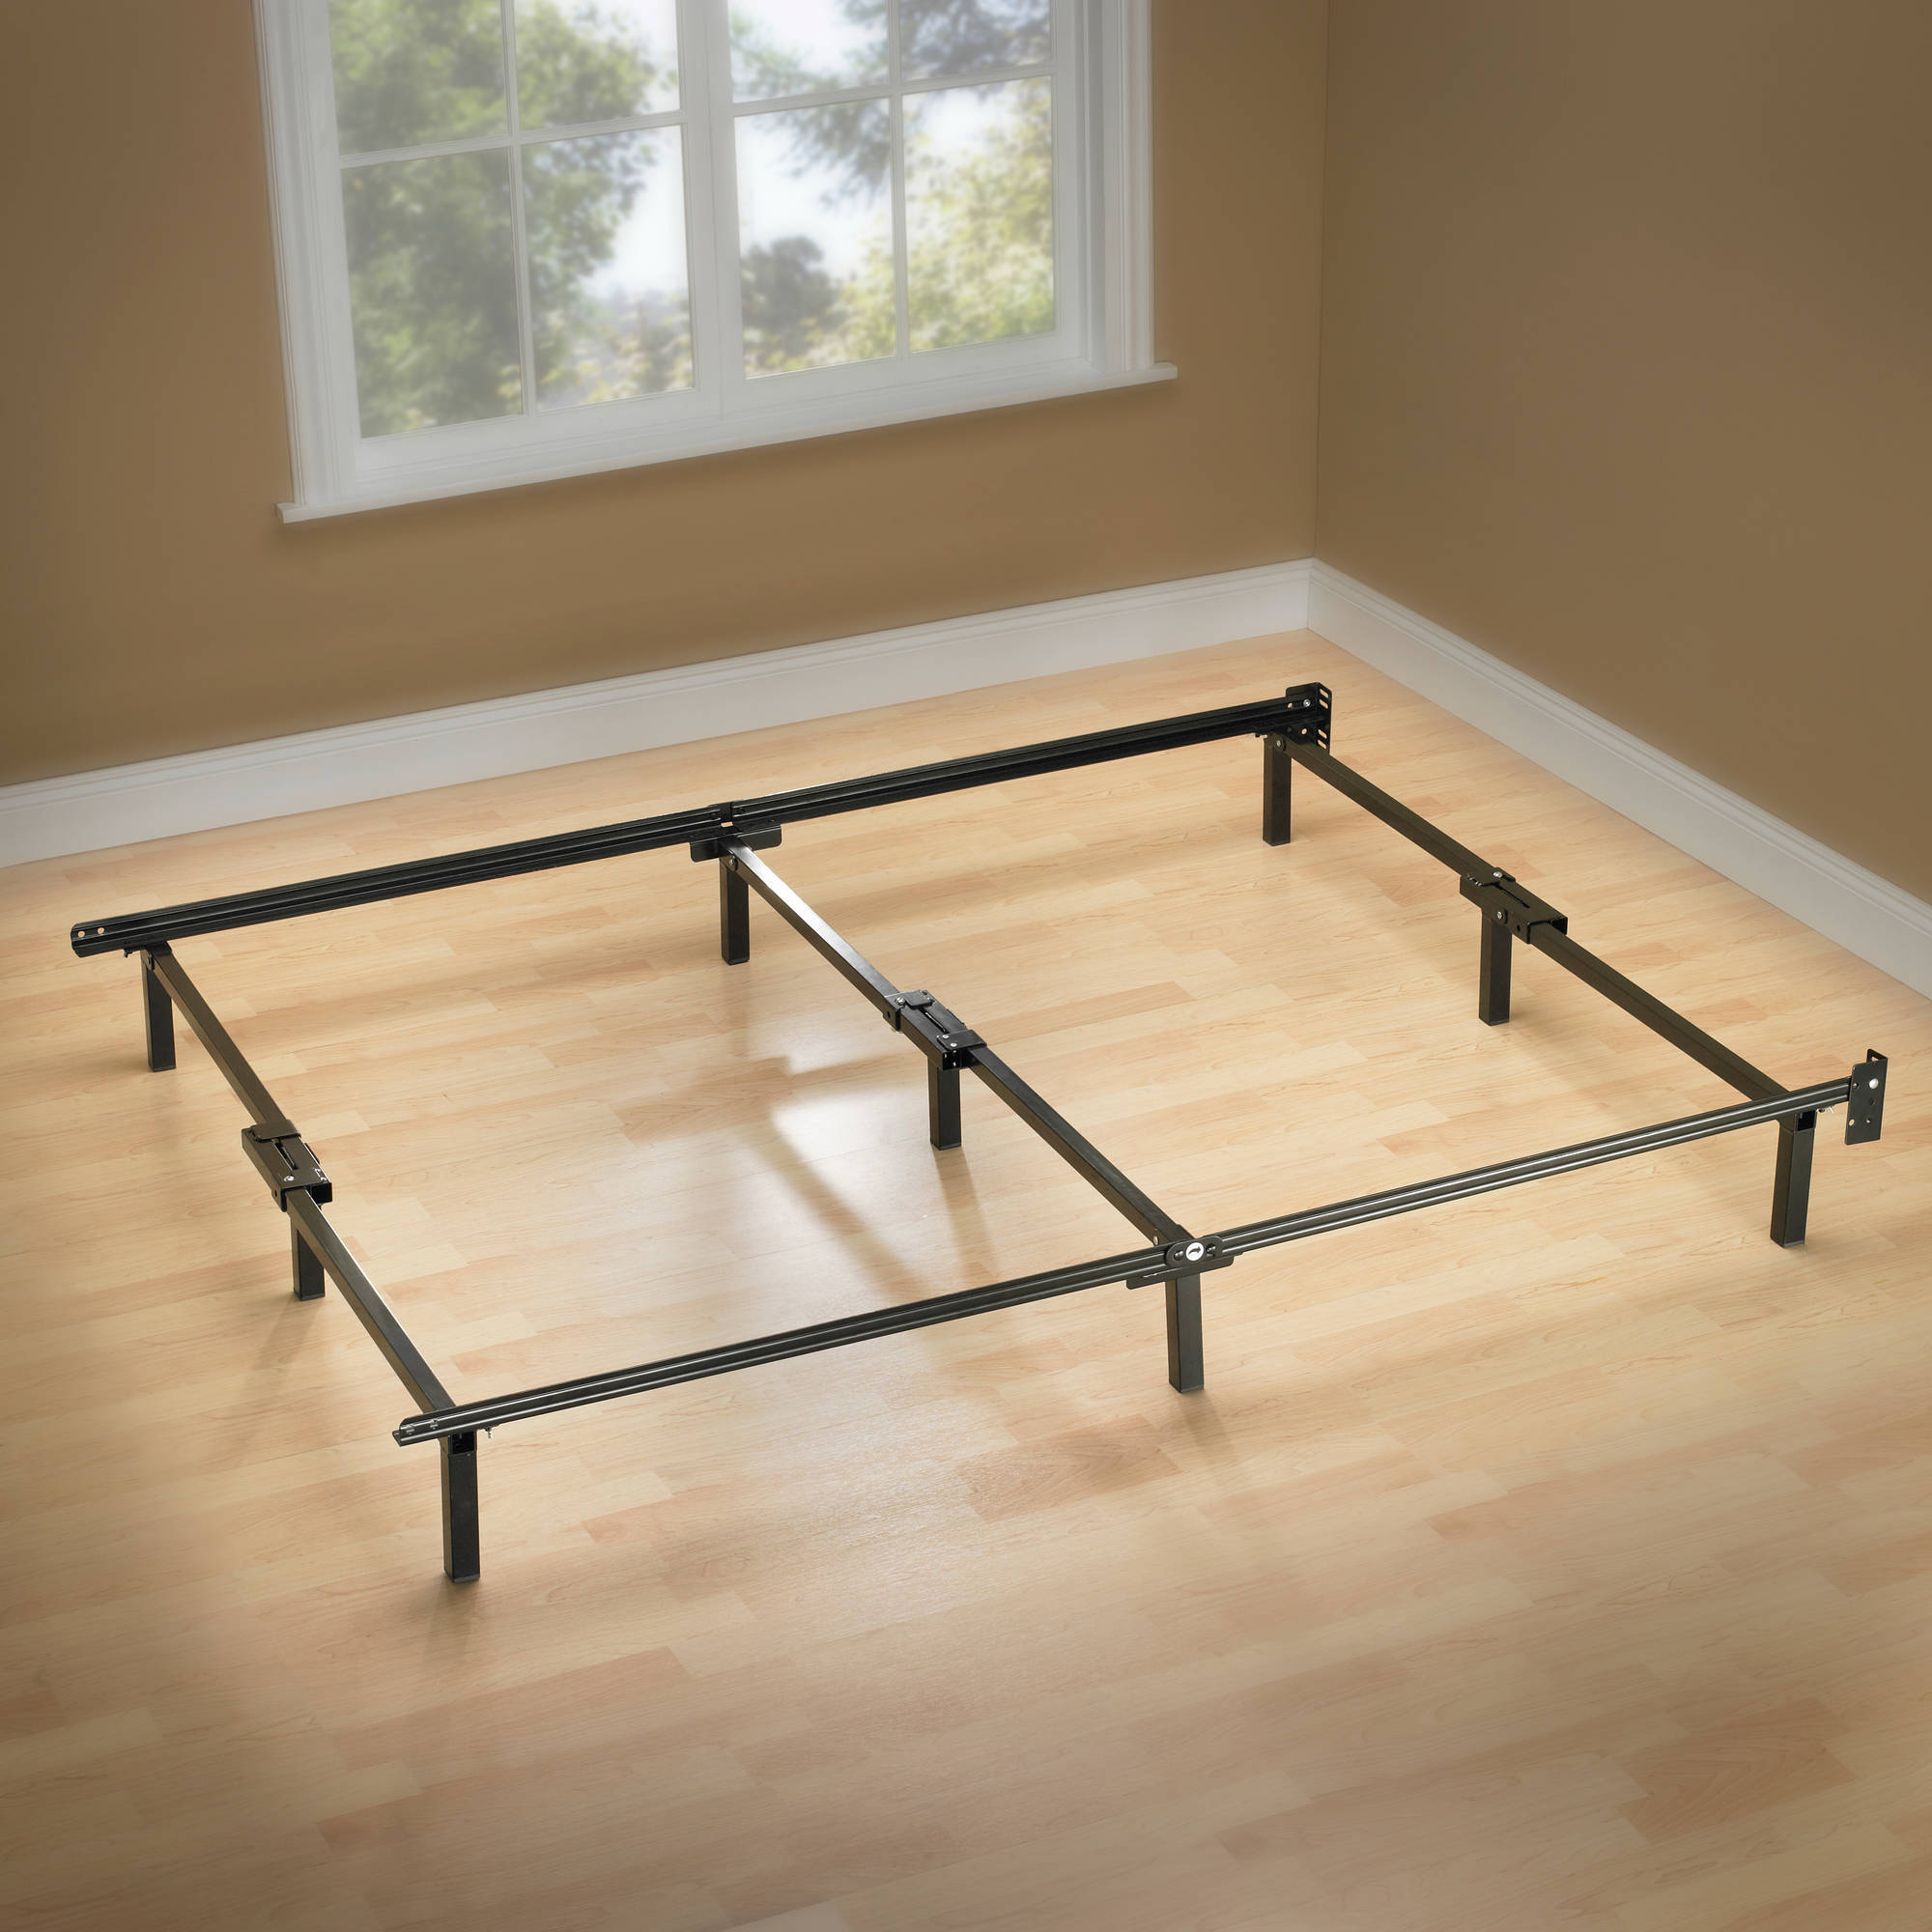 "Spa Sensations 7"" Low Profile Adjustable Steel Bed Frame, Easy No Tools Assembly, Multiple Sizes"